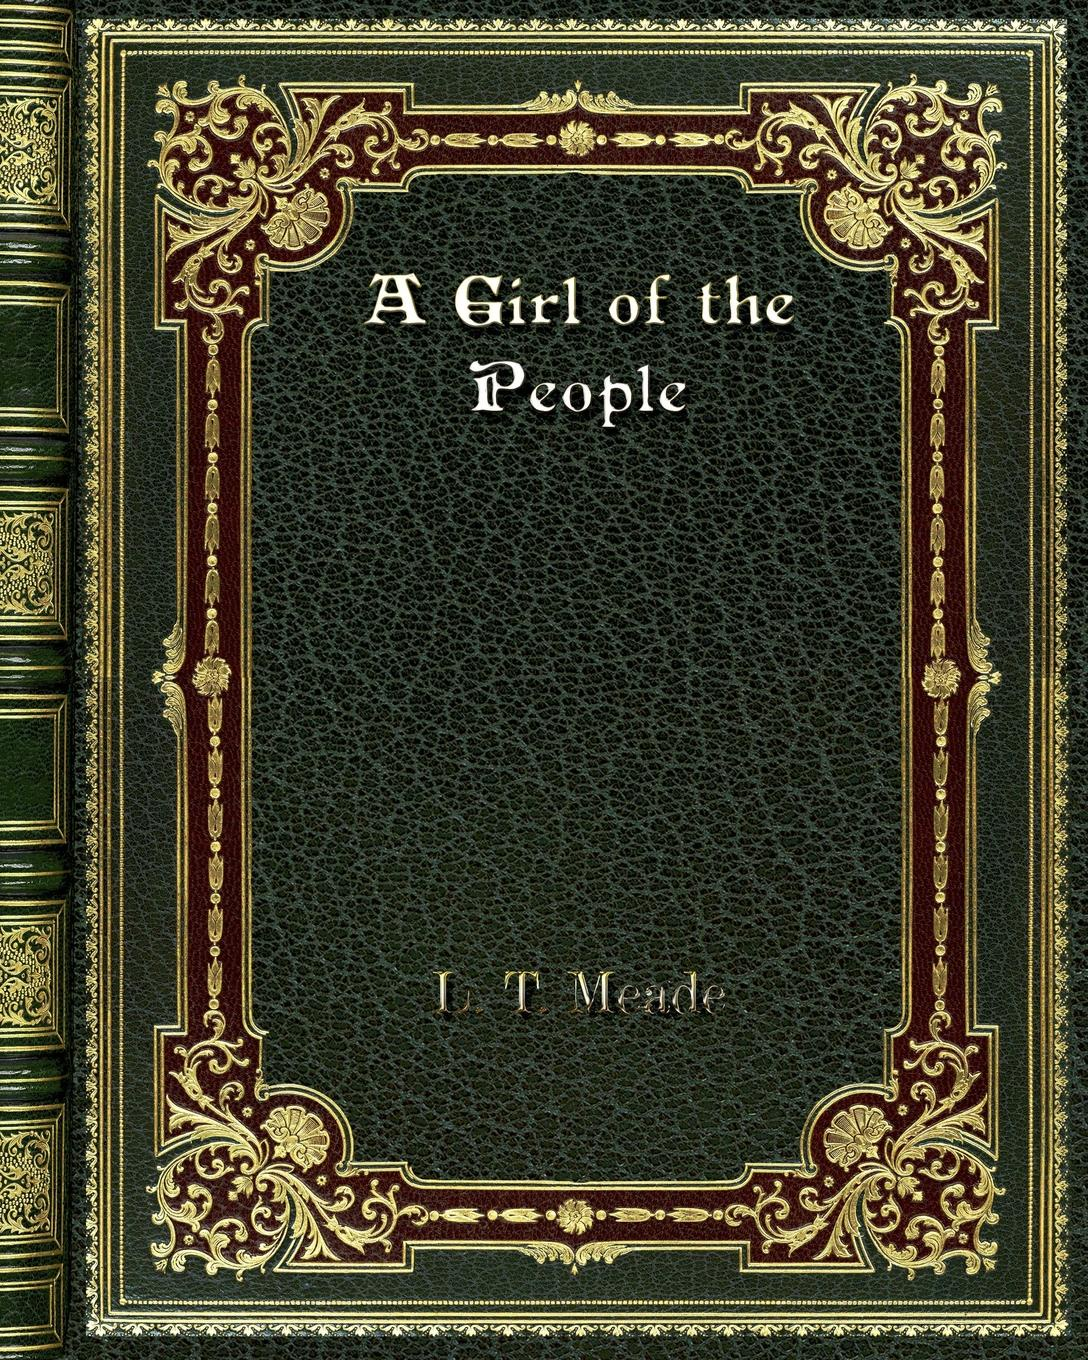 L. T. Meade A Girl of the People meade l t scamp and i a story of city by ways